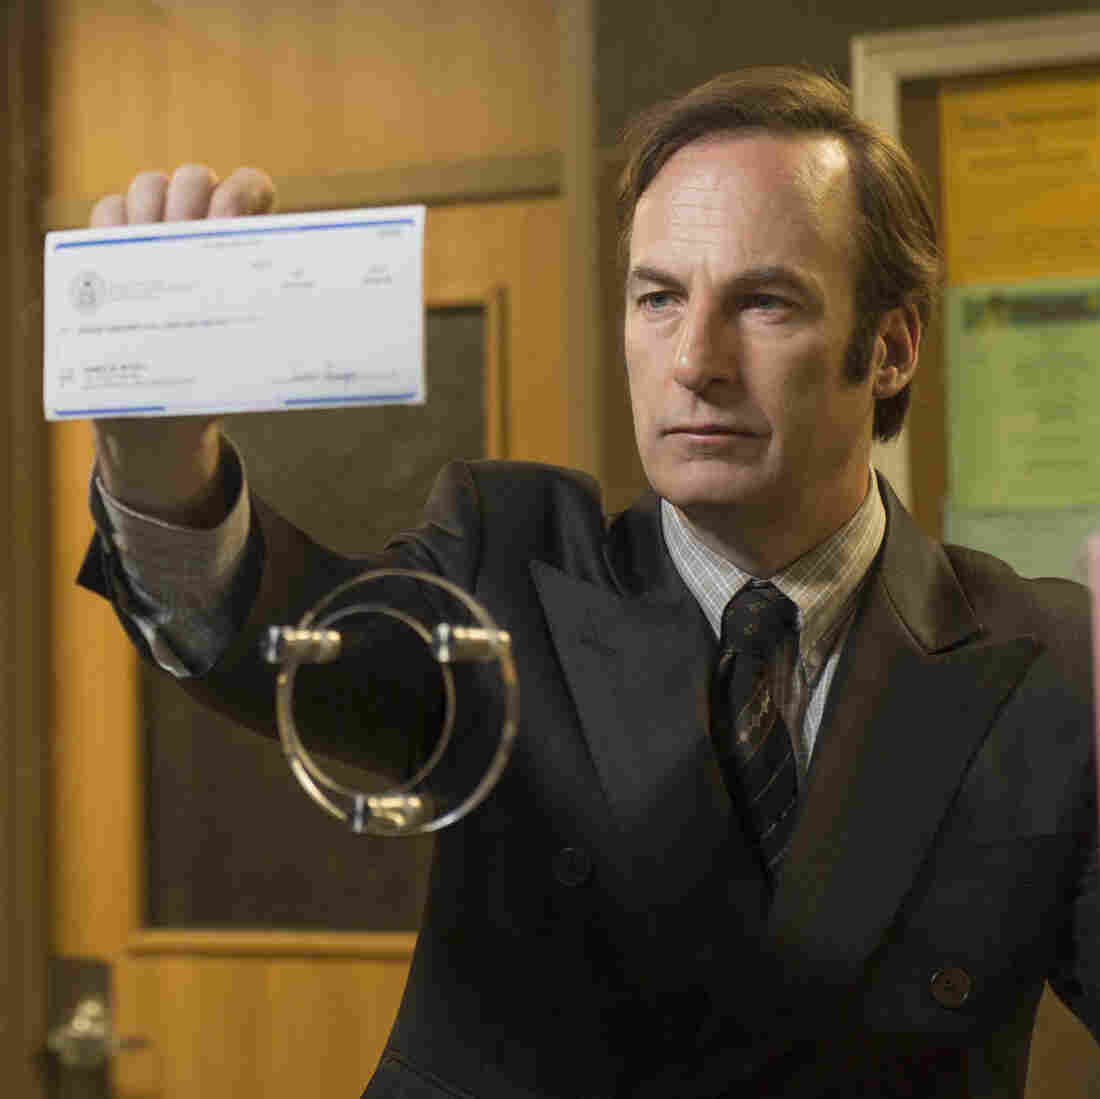 Missing Your 'Breaking Bad' Fix? 'Better Call Saul' Will Hit The Spot